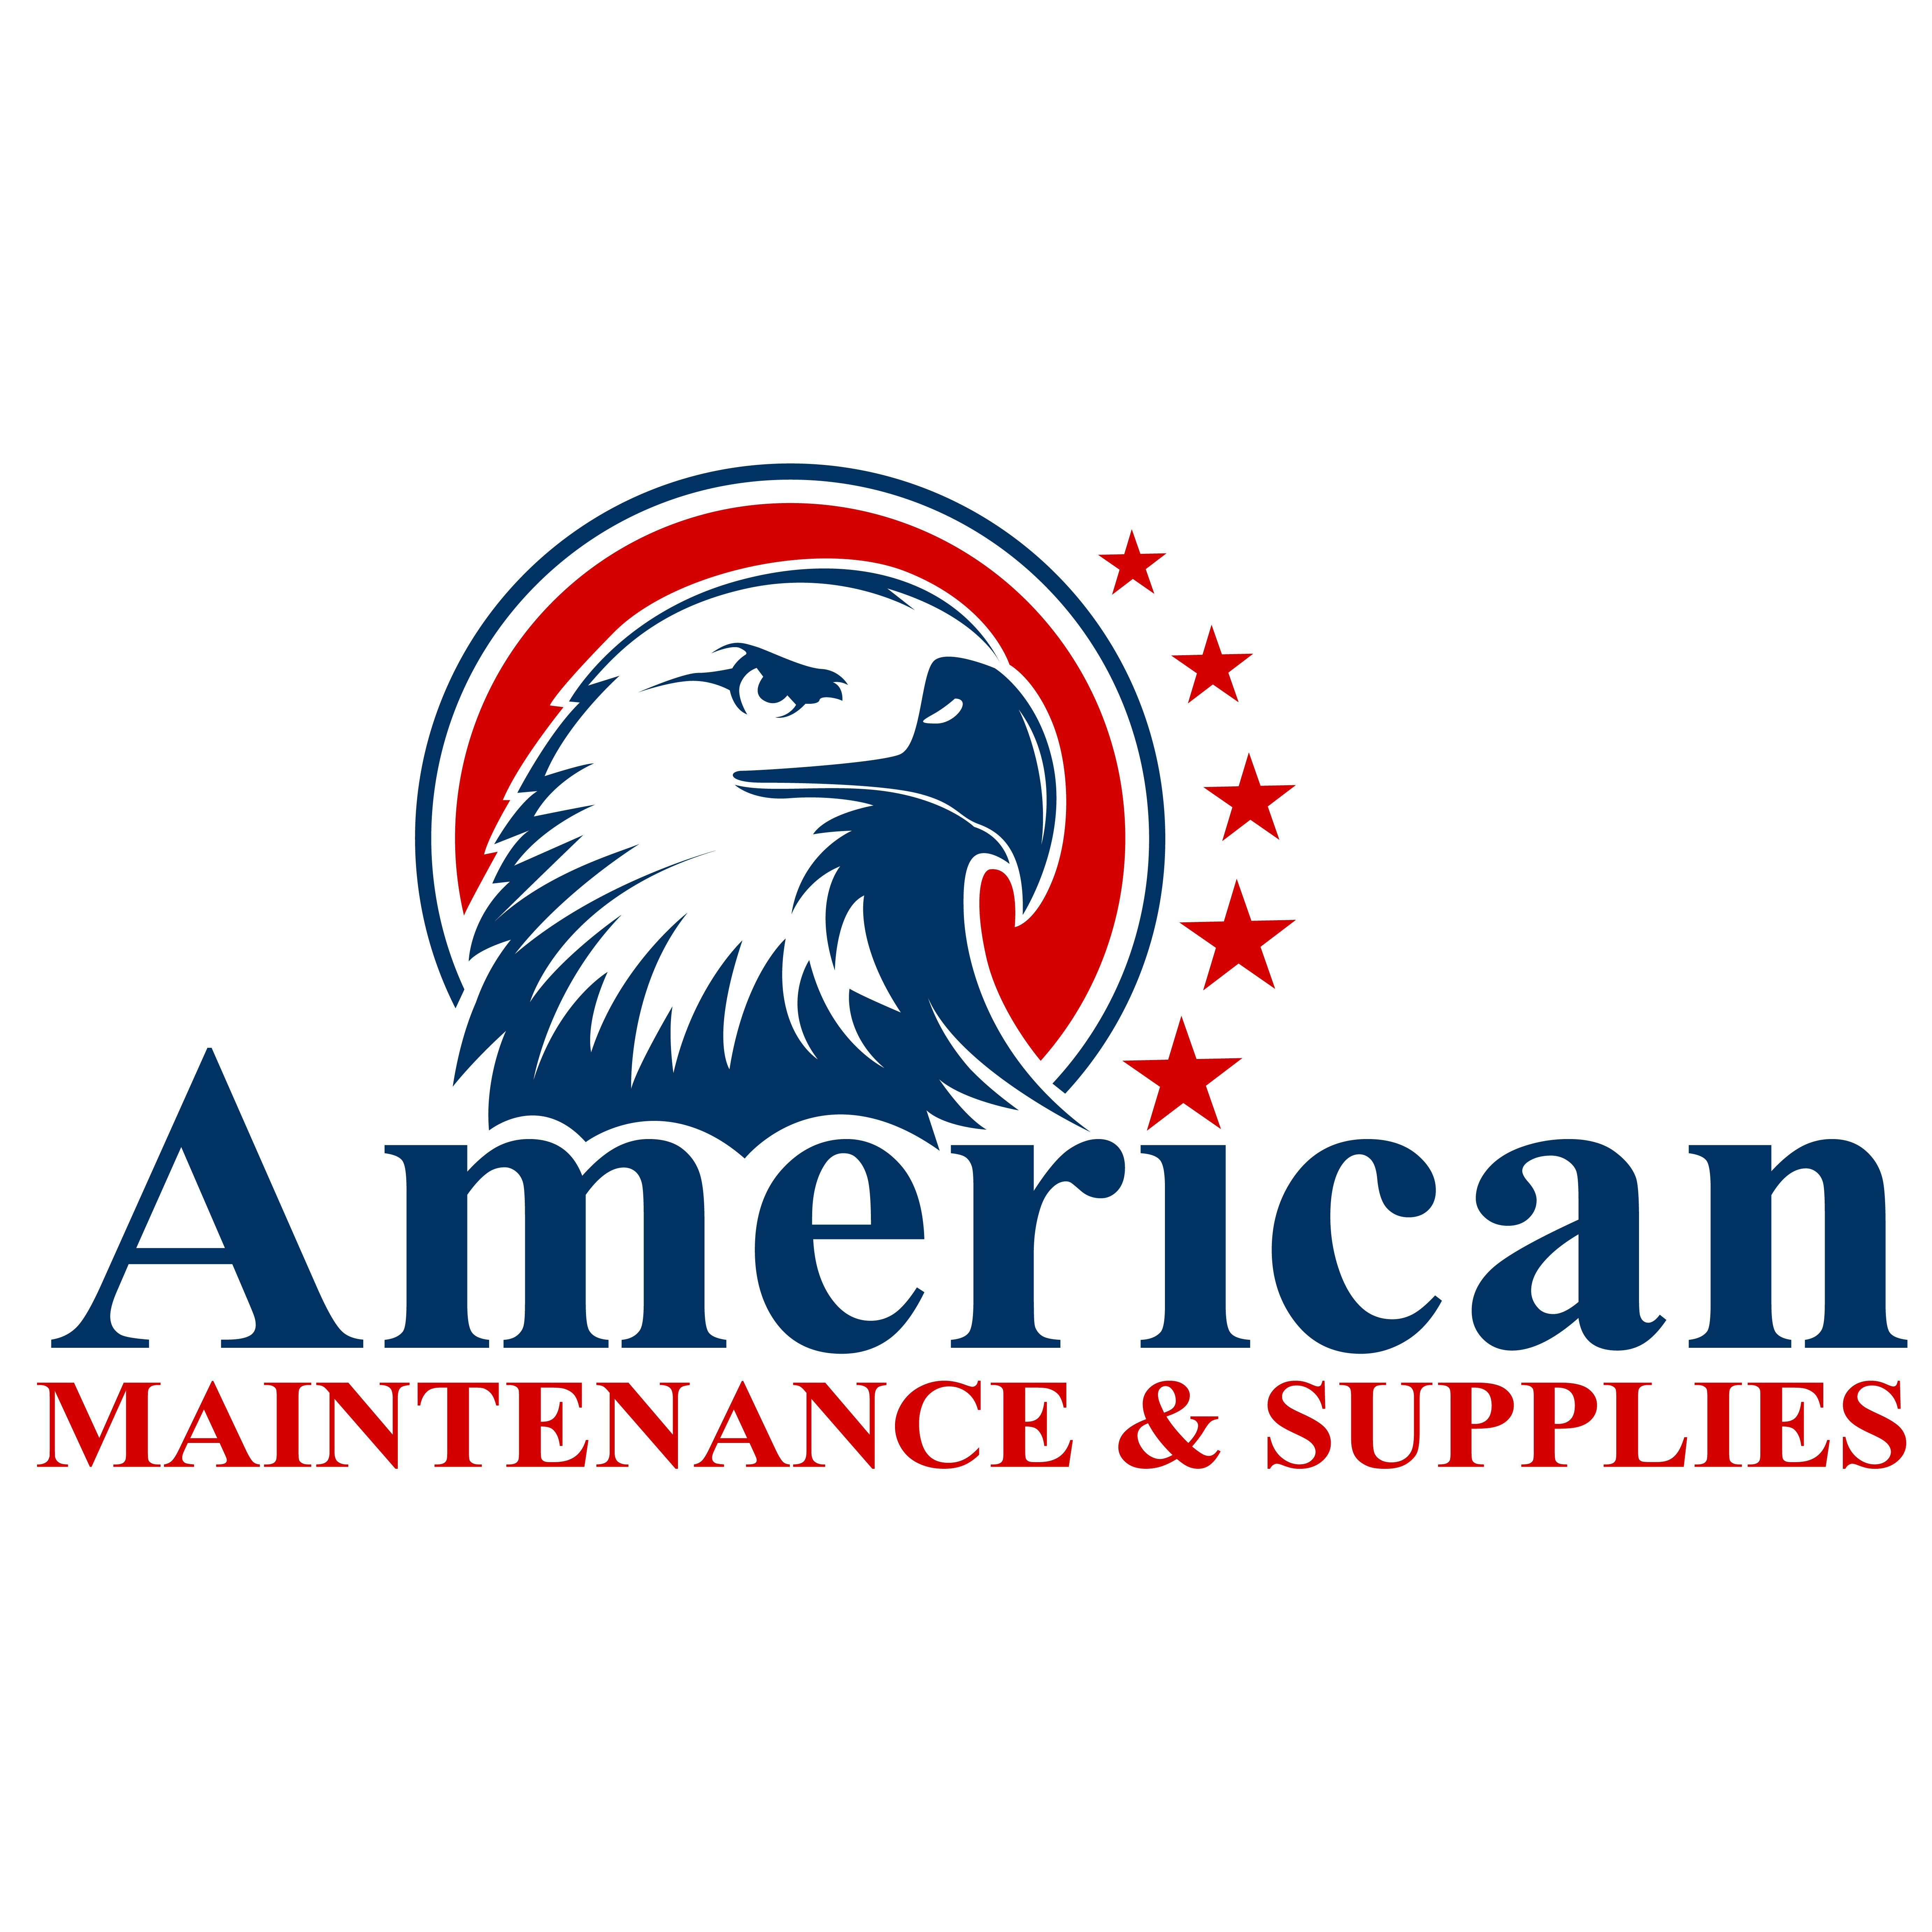 American Maintenance & Supplies, Inc.